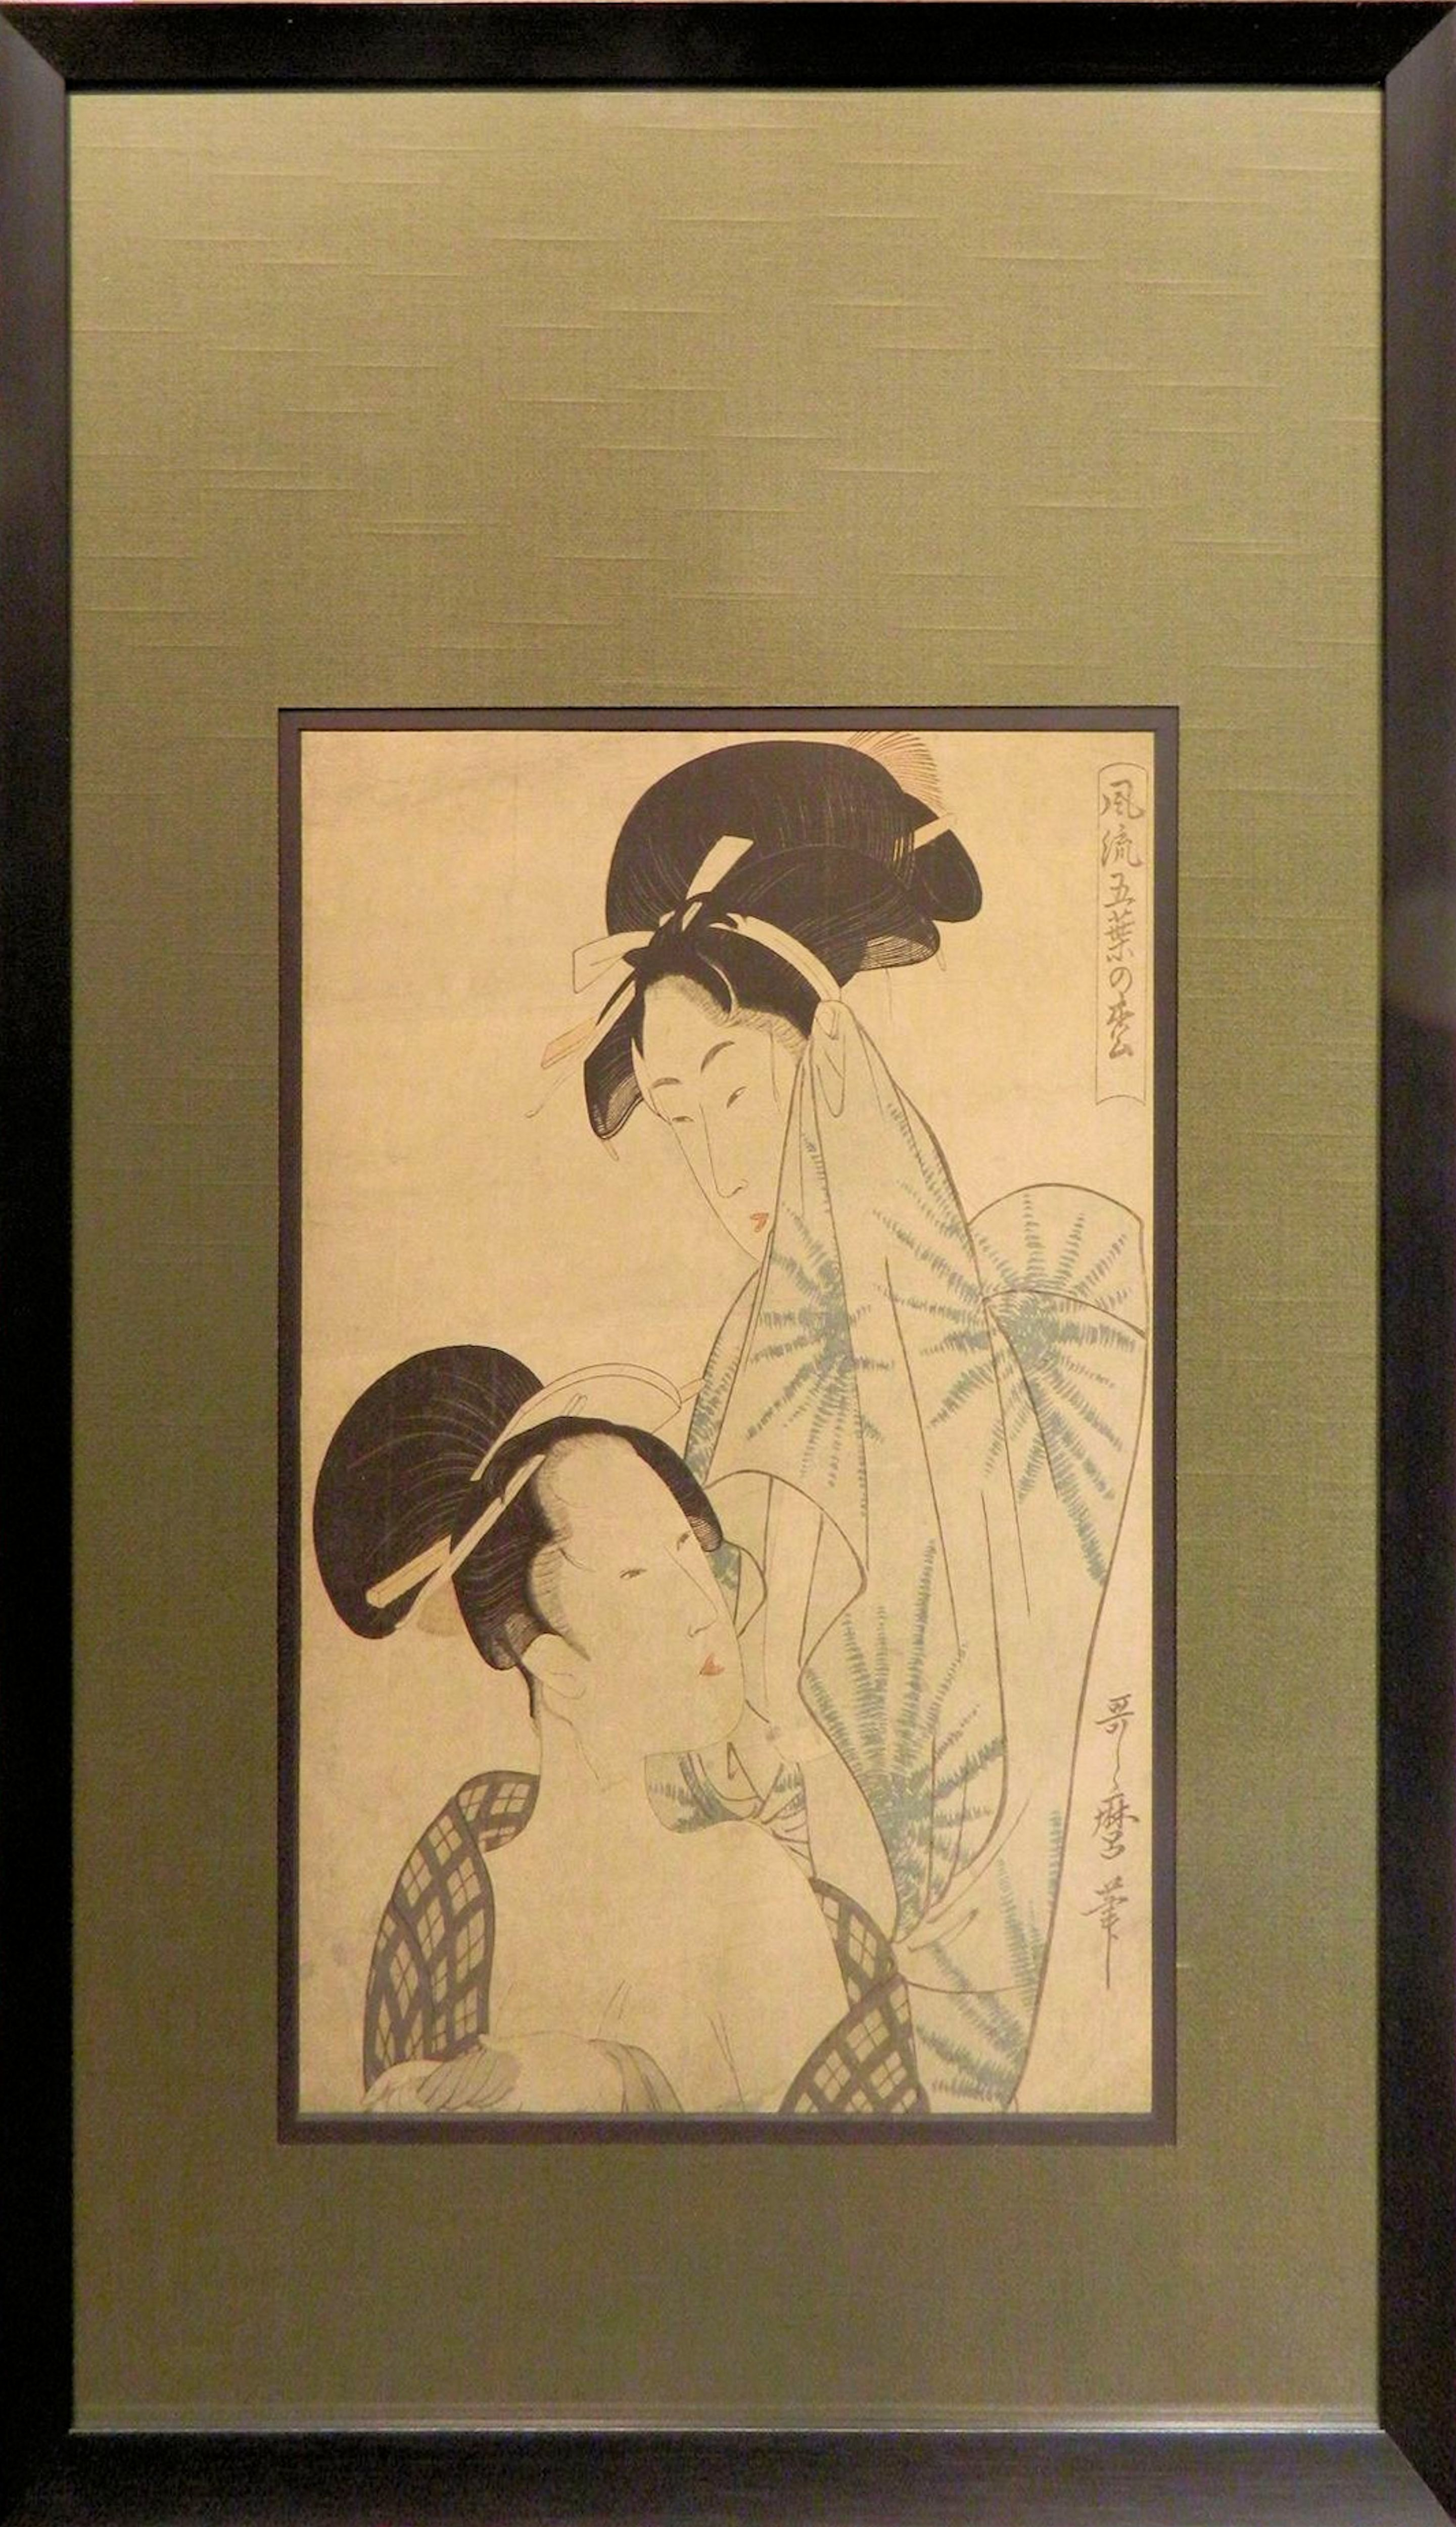 A pale green silk mat with a simple black frame lets these Asian ladies shine.